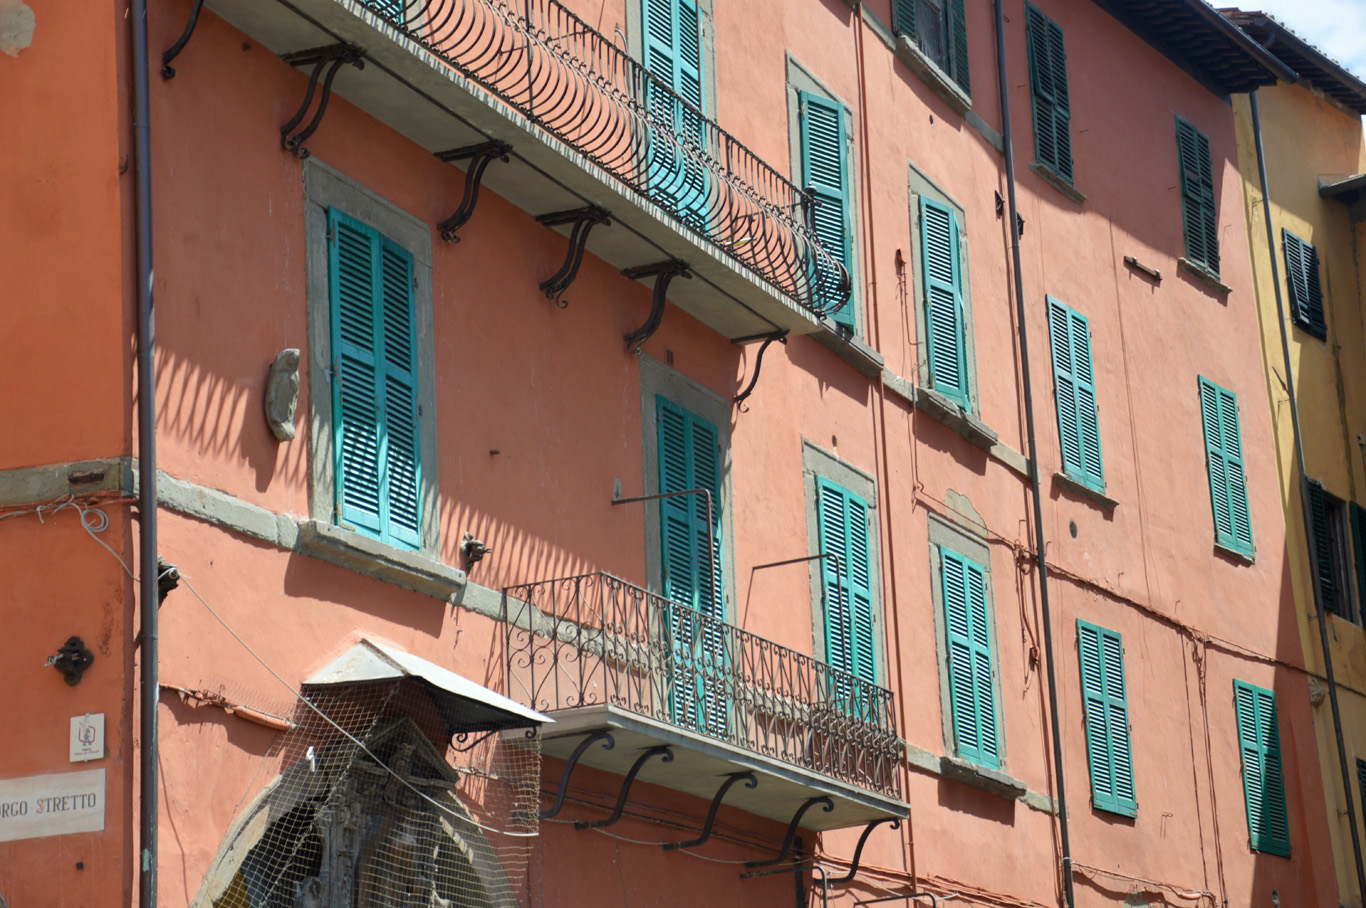 Typical architecture in Pisa